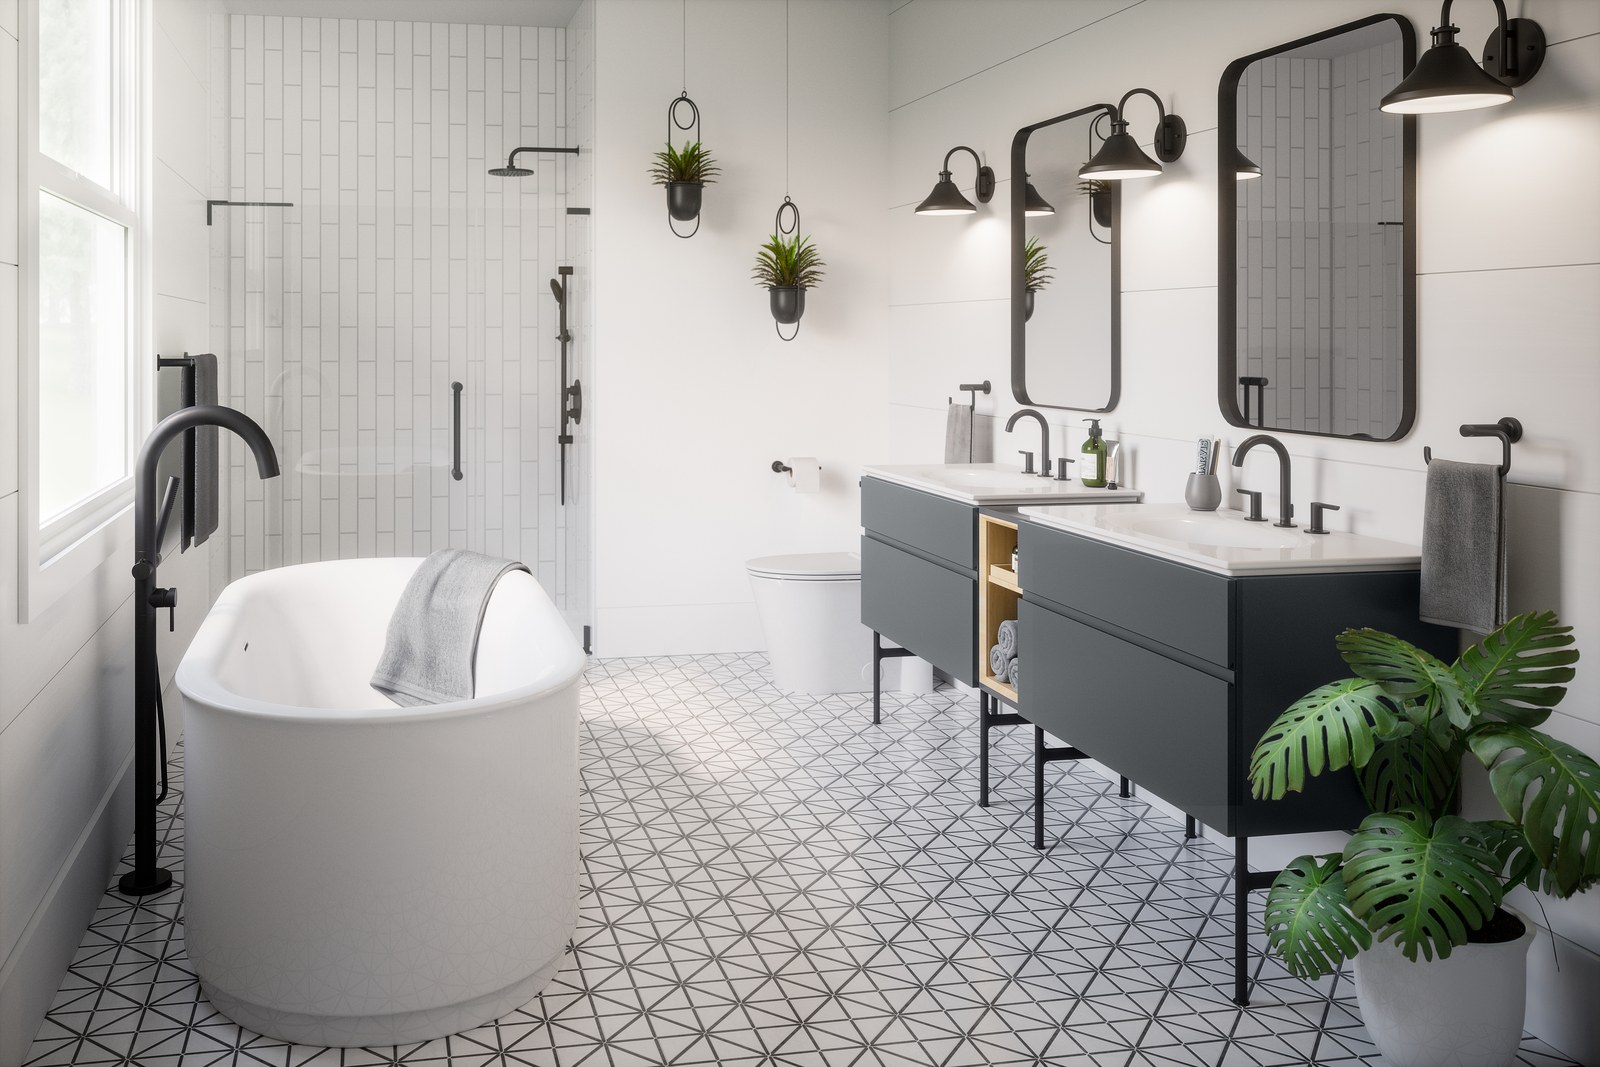 The Studio S Collection, which launched at KBIS 2020, by American Standard. Photo: Courtesy of American Standard